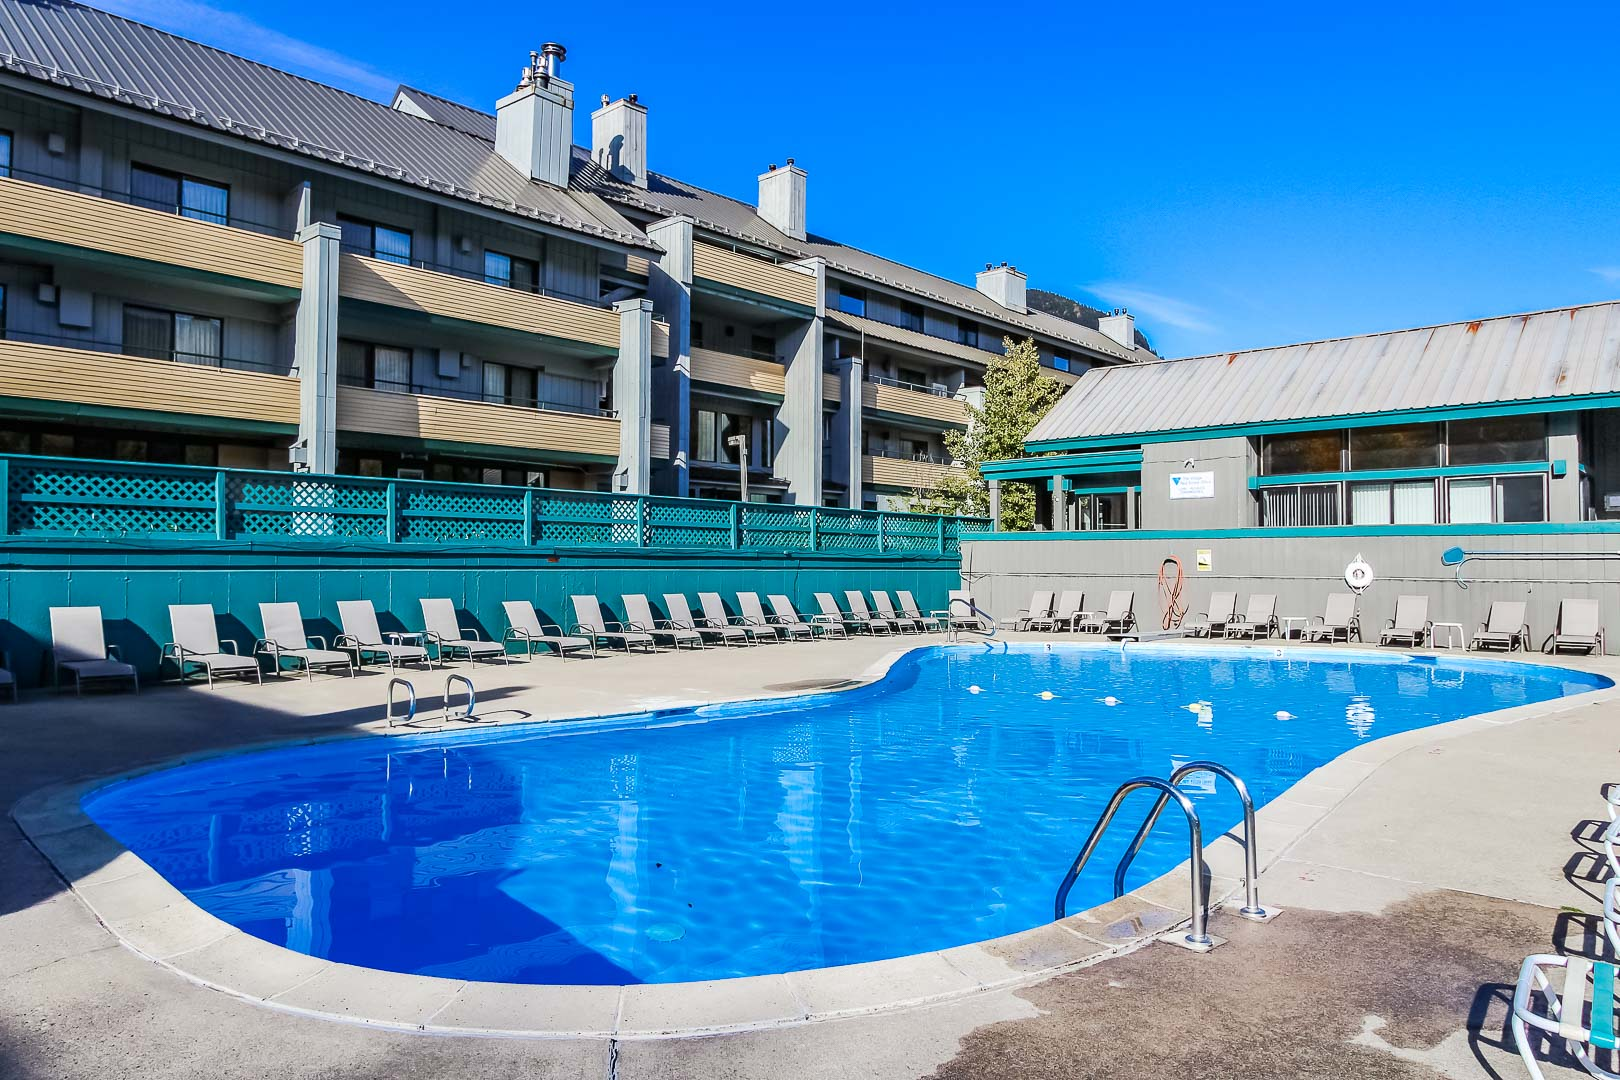 A spacious outdoor swimming pool at VRI's Village of Loon Mountain in New Hampshire.